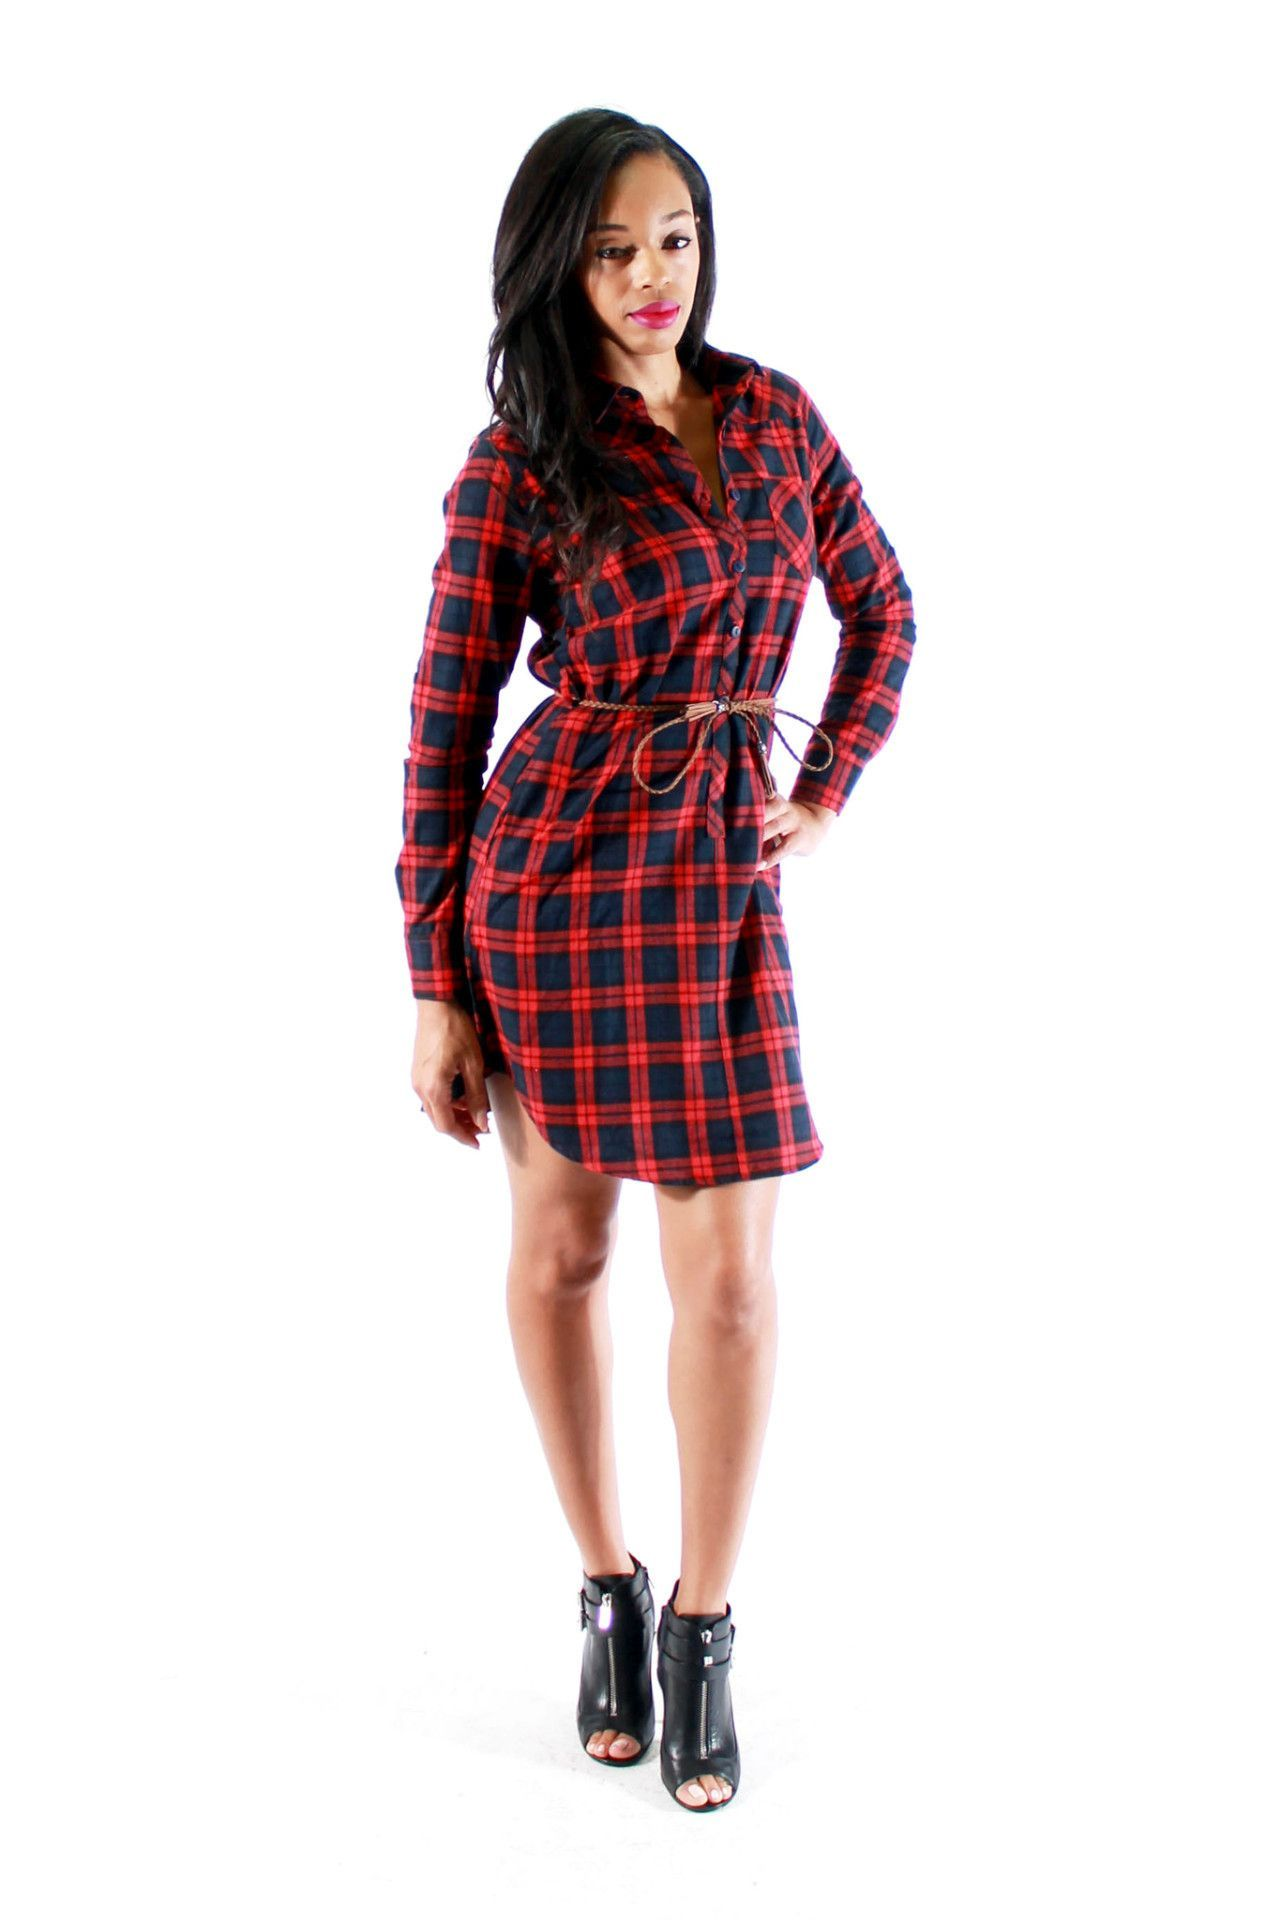 Flannel dress for women  Flannel dresses  Products  Pinterest  Flannel dress and Products